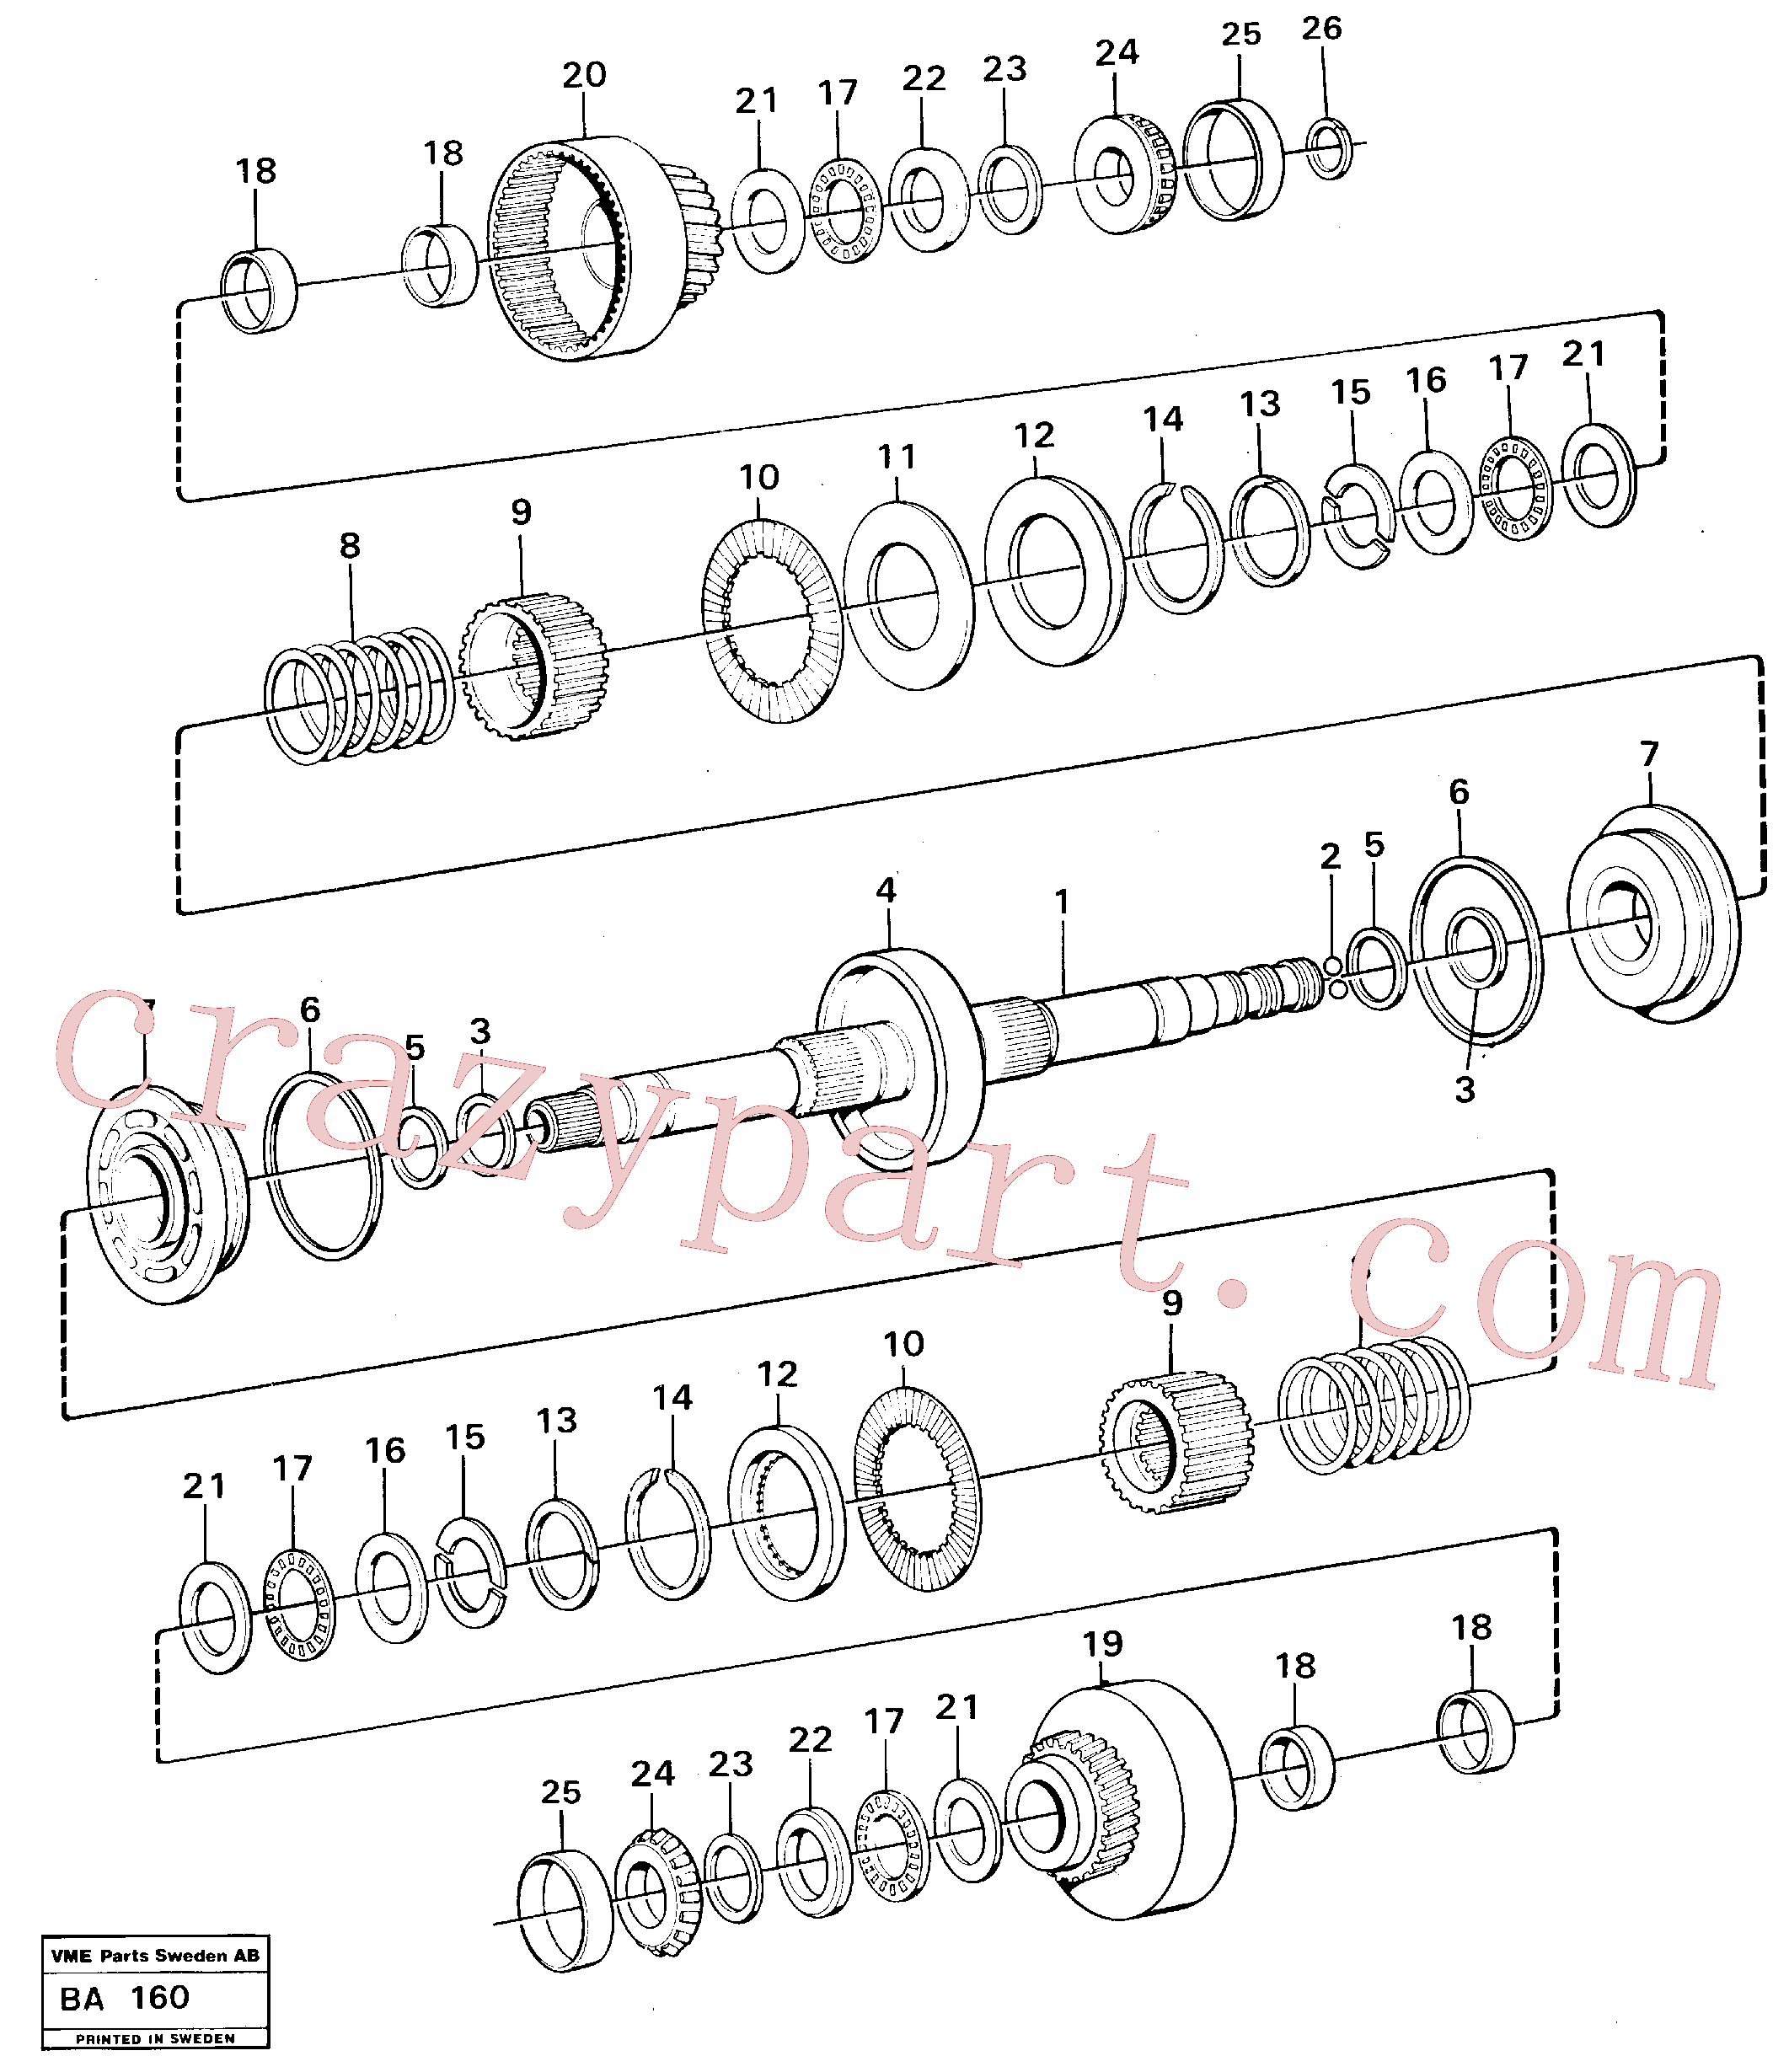 VOE11037197 for Volvo Clutches forward and reverse(BA160 assembly)